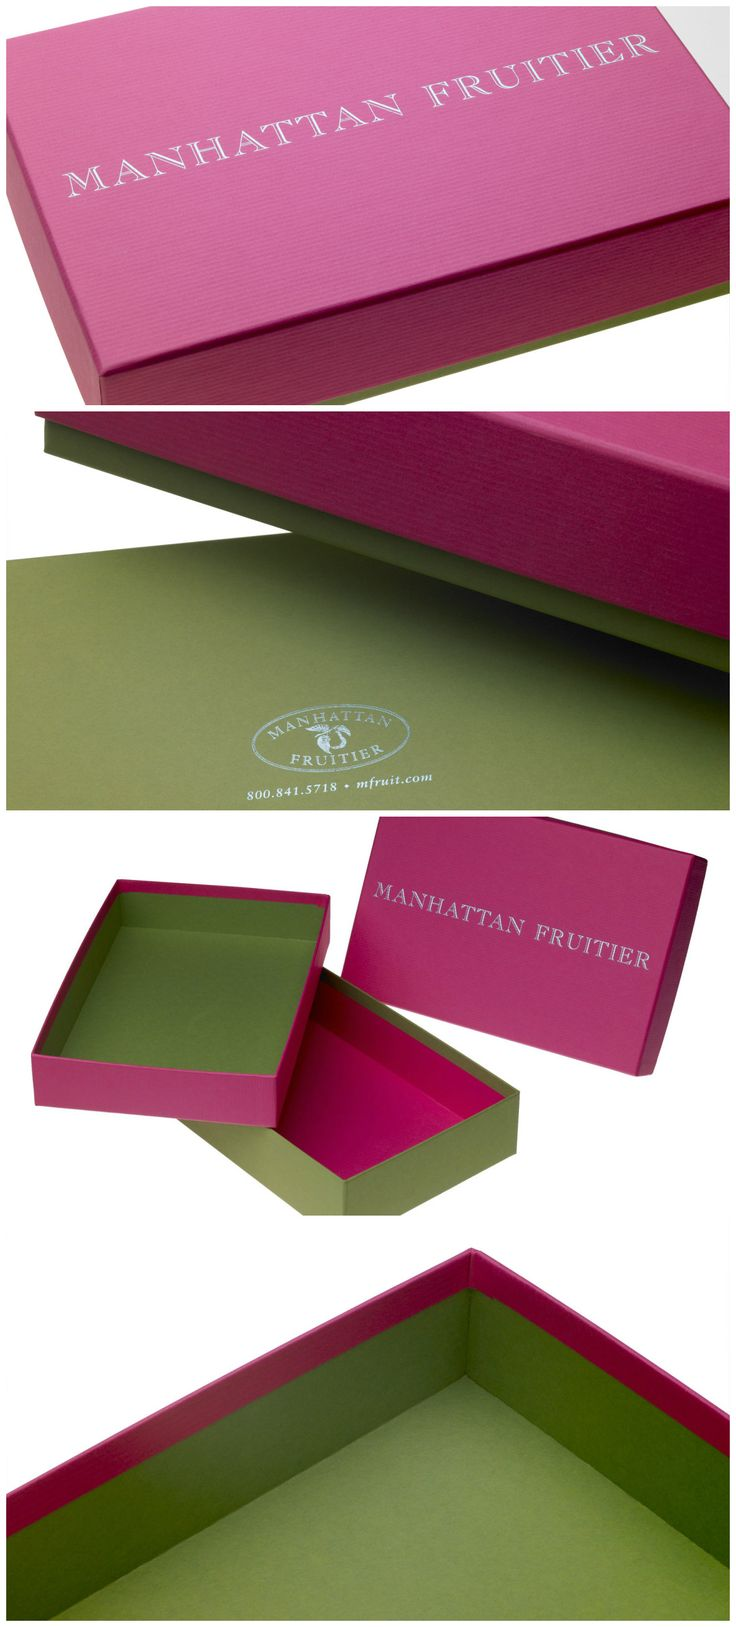 Taylor Box Company- Manhattan Fruitier   A colorful base and lid construction for Manhattan Fruitier's specialty cupcakes.   #design #box #packaging #cupcakes #handmade #custom #manufacturing #madeinusa